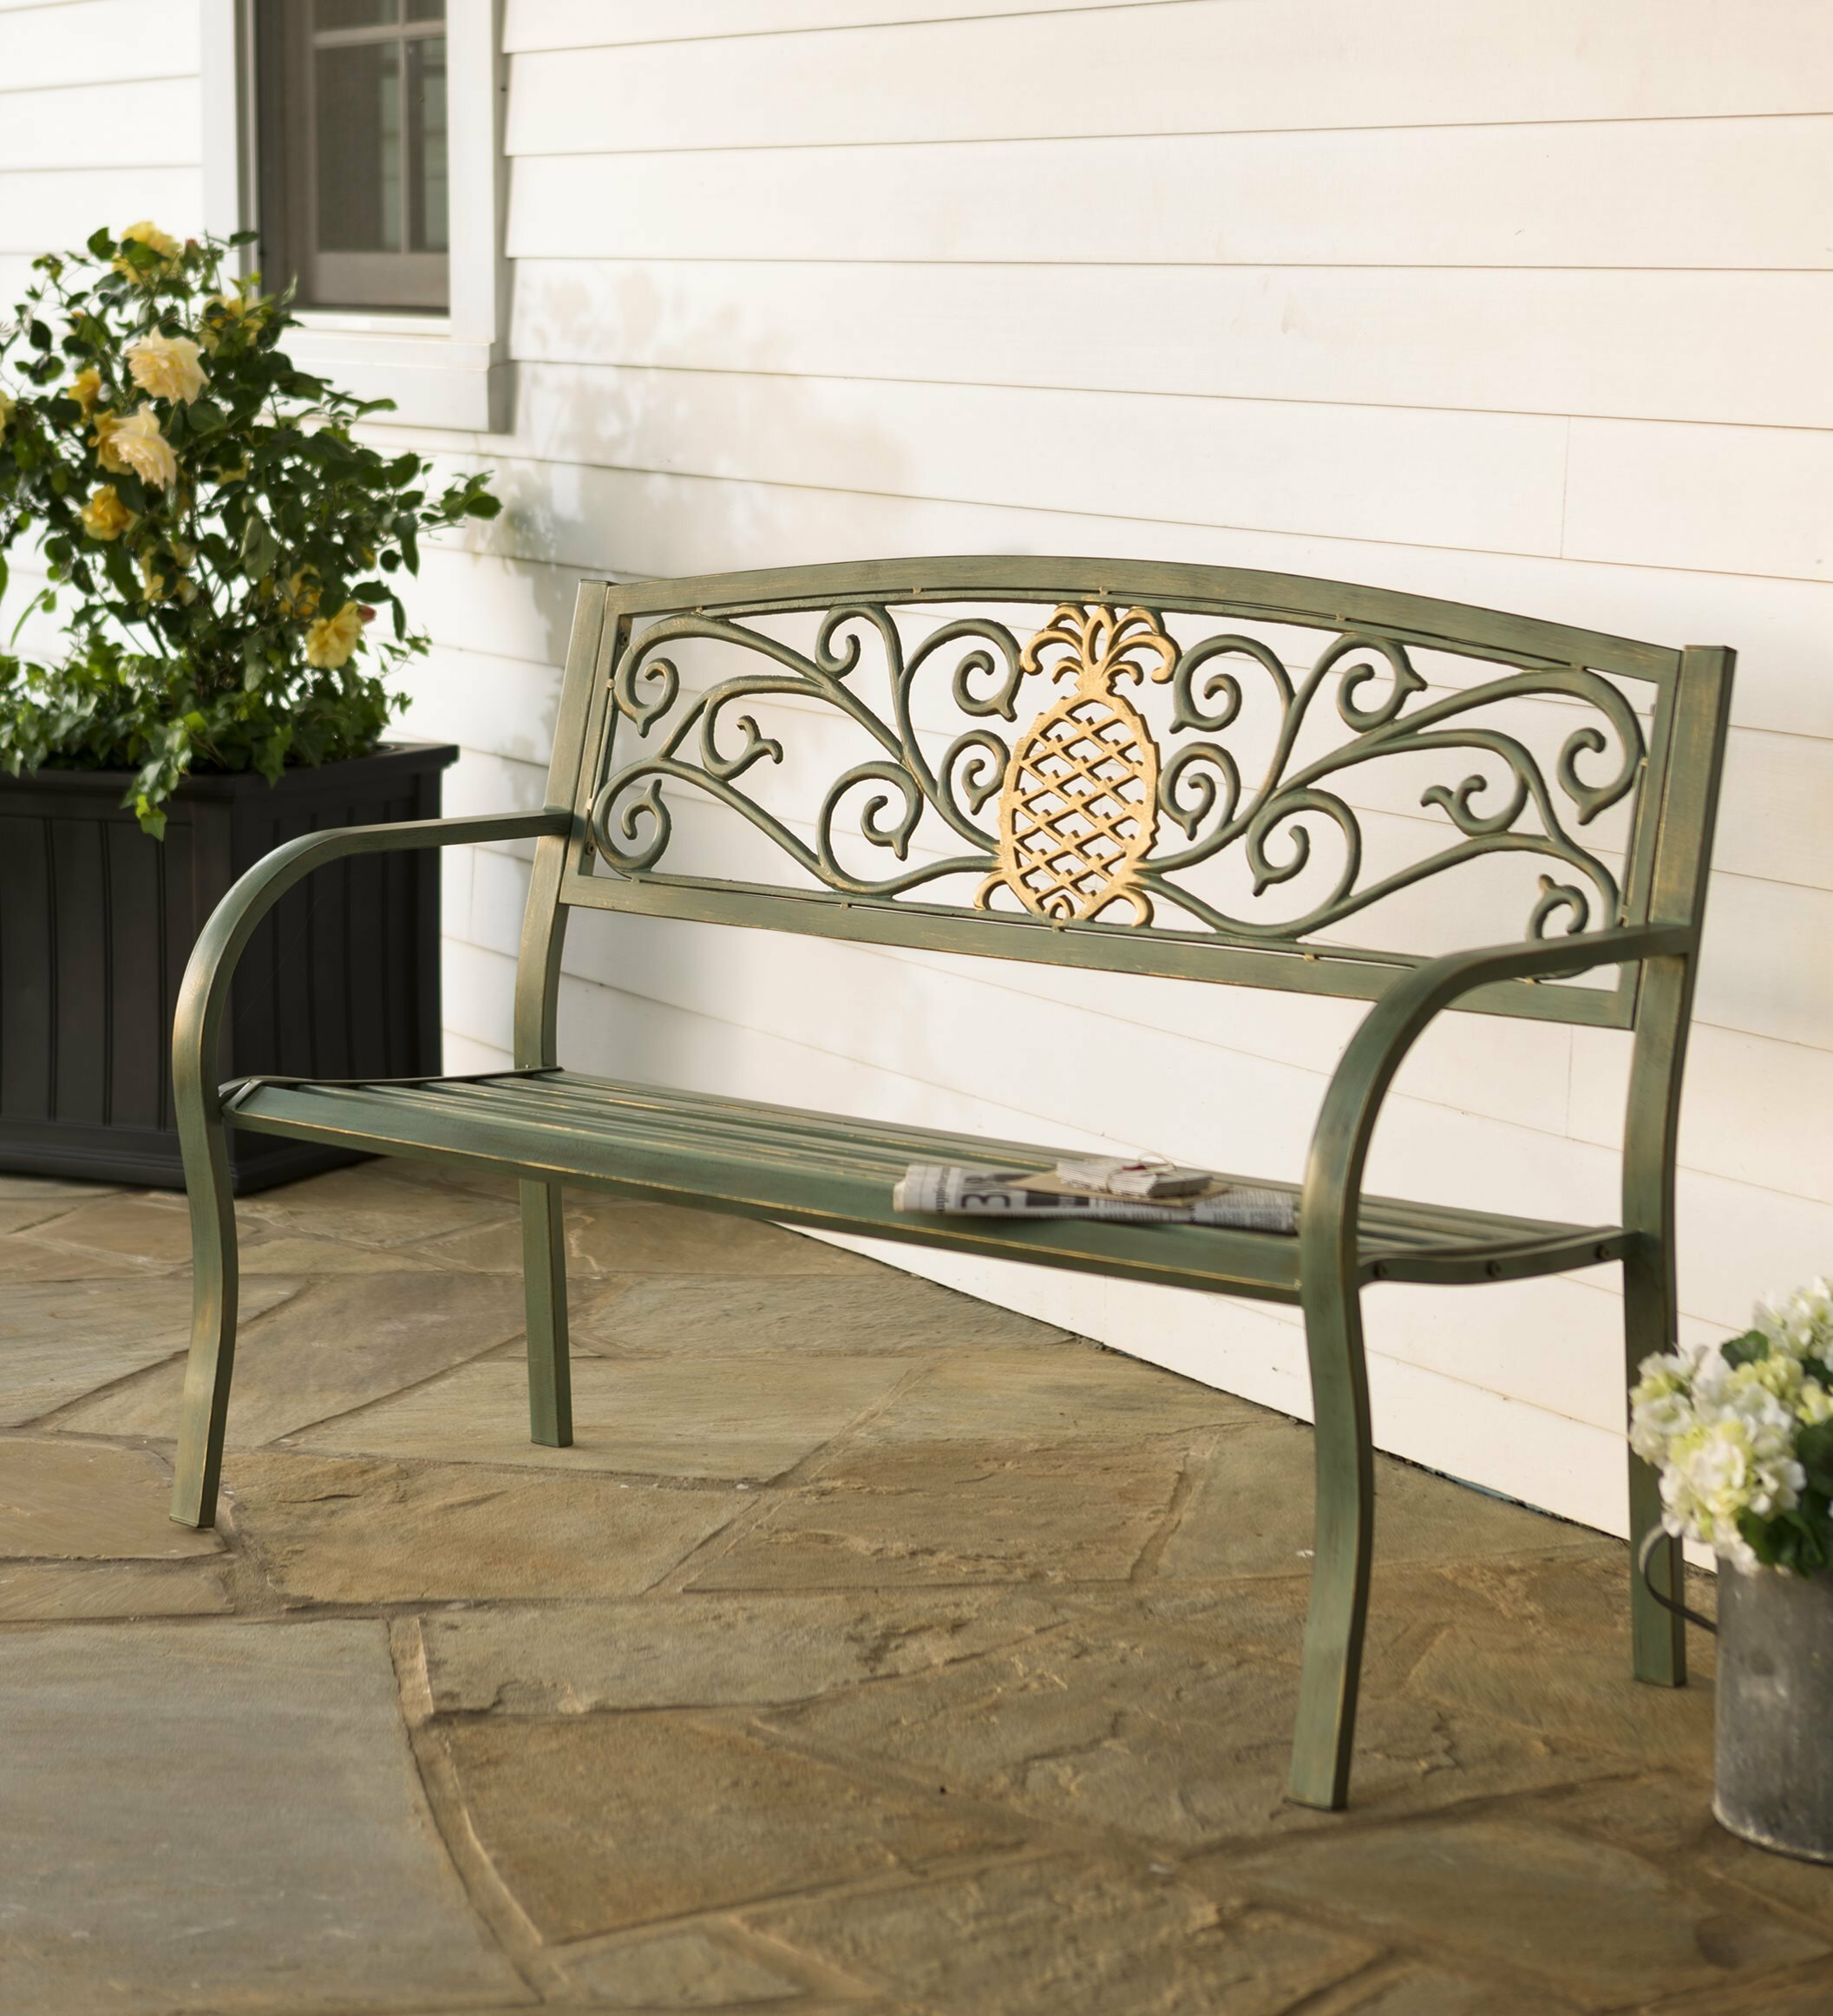 Pineapple Metal Garden Bench Within Cavin Garden Benches (View 7 of 25)